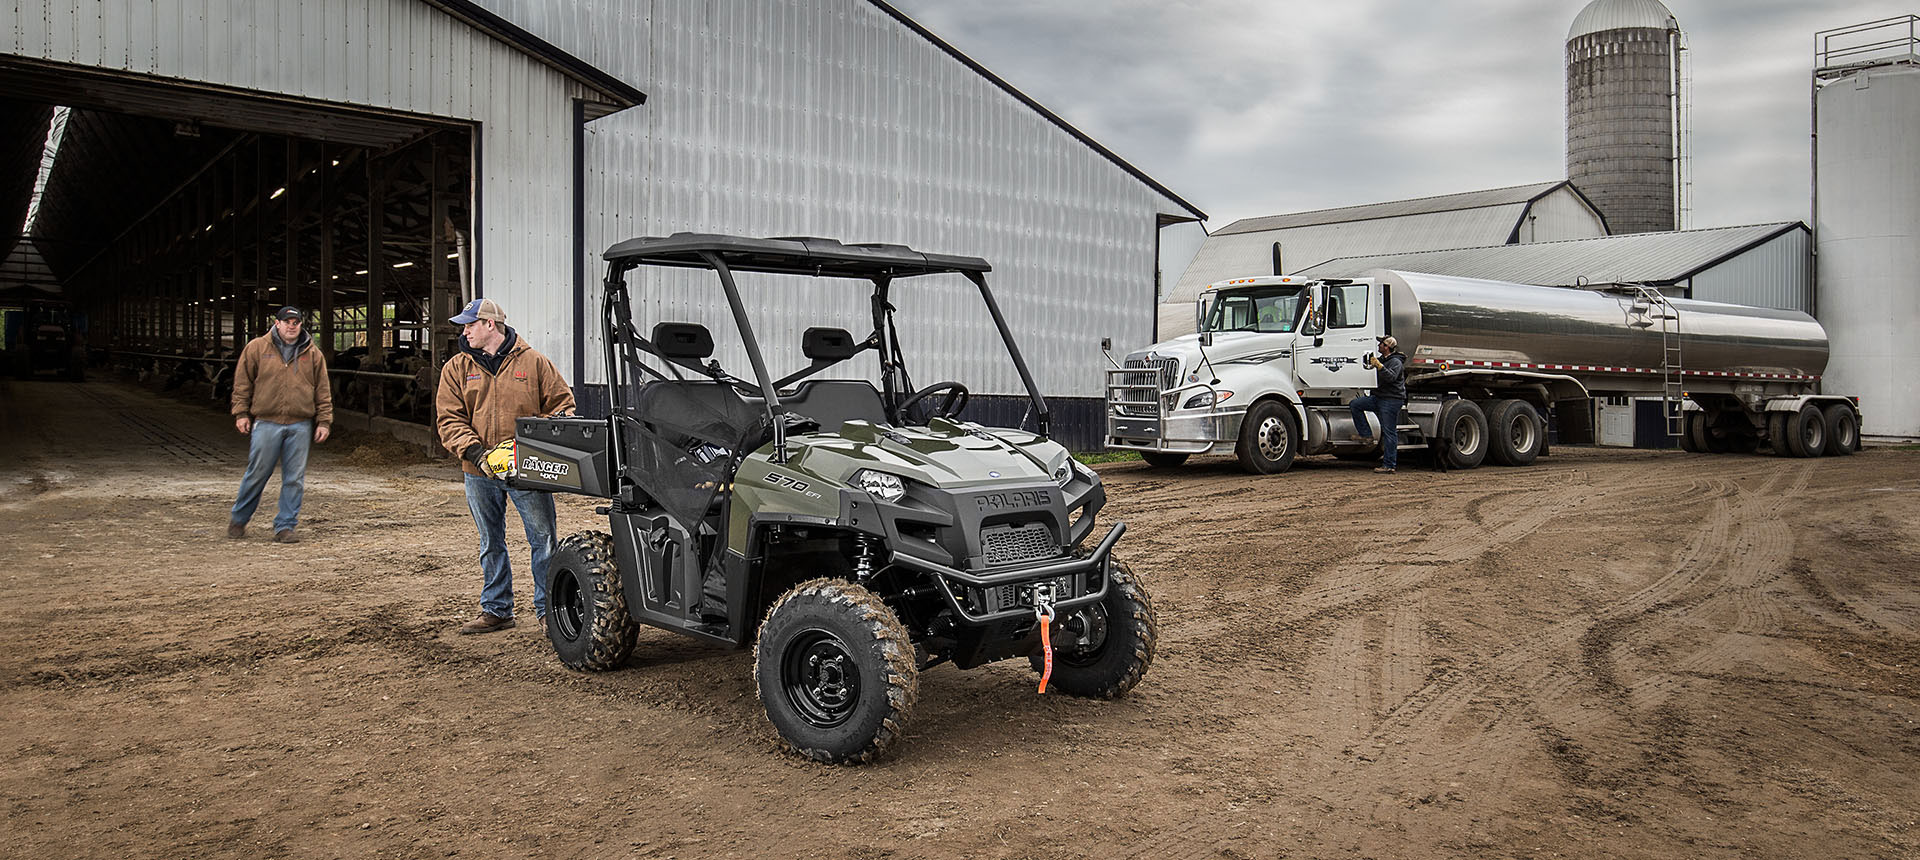 Polaris Ranger 570 Price | Upcoming Car Release 2020